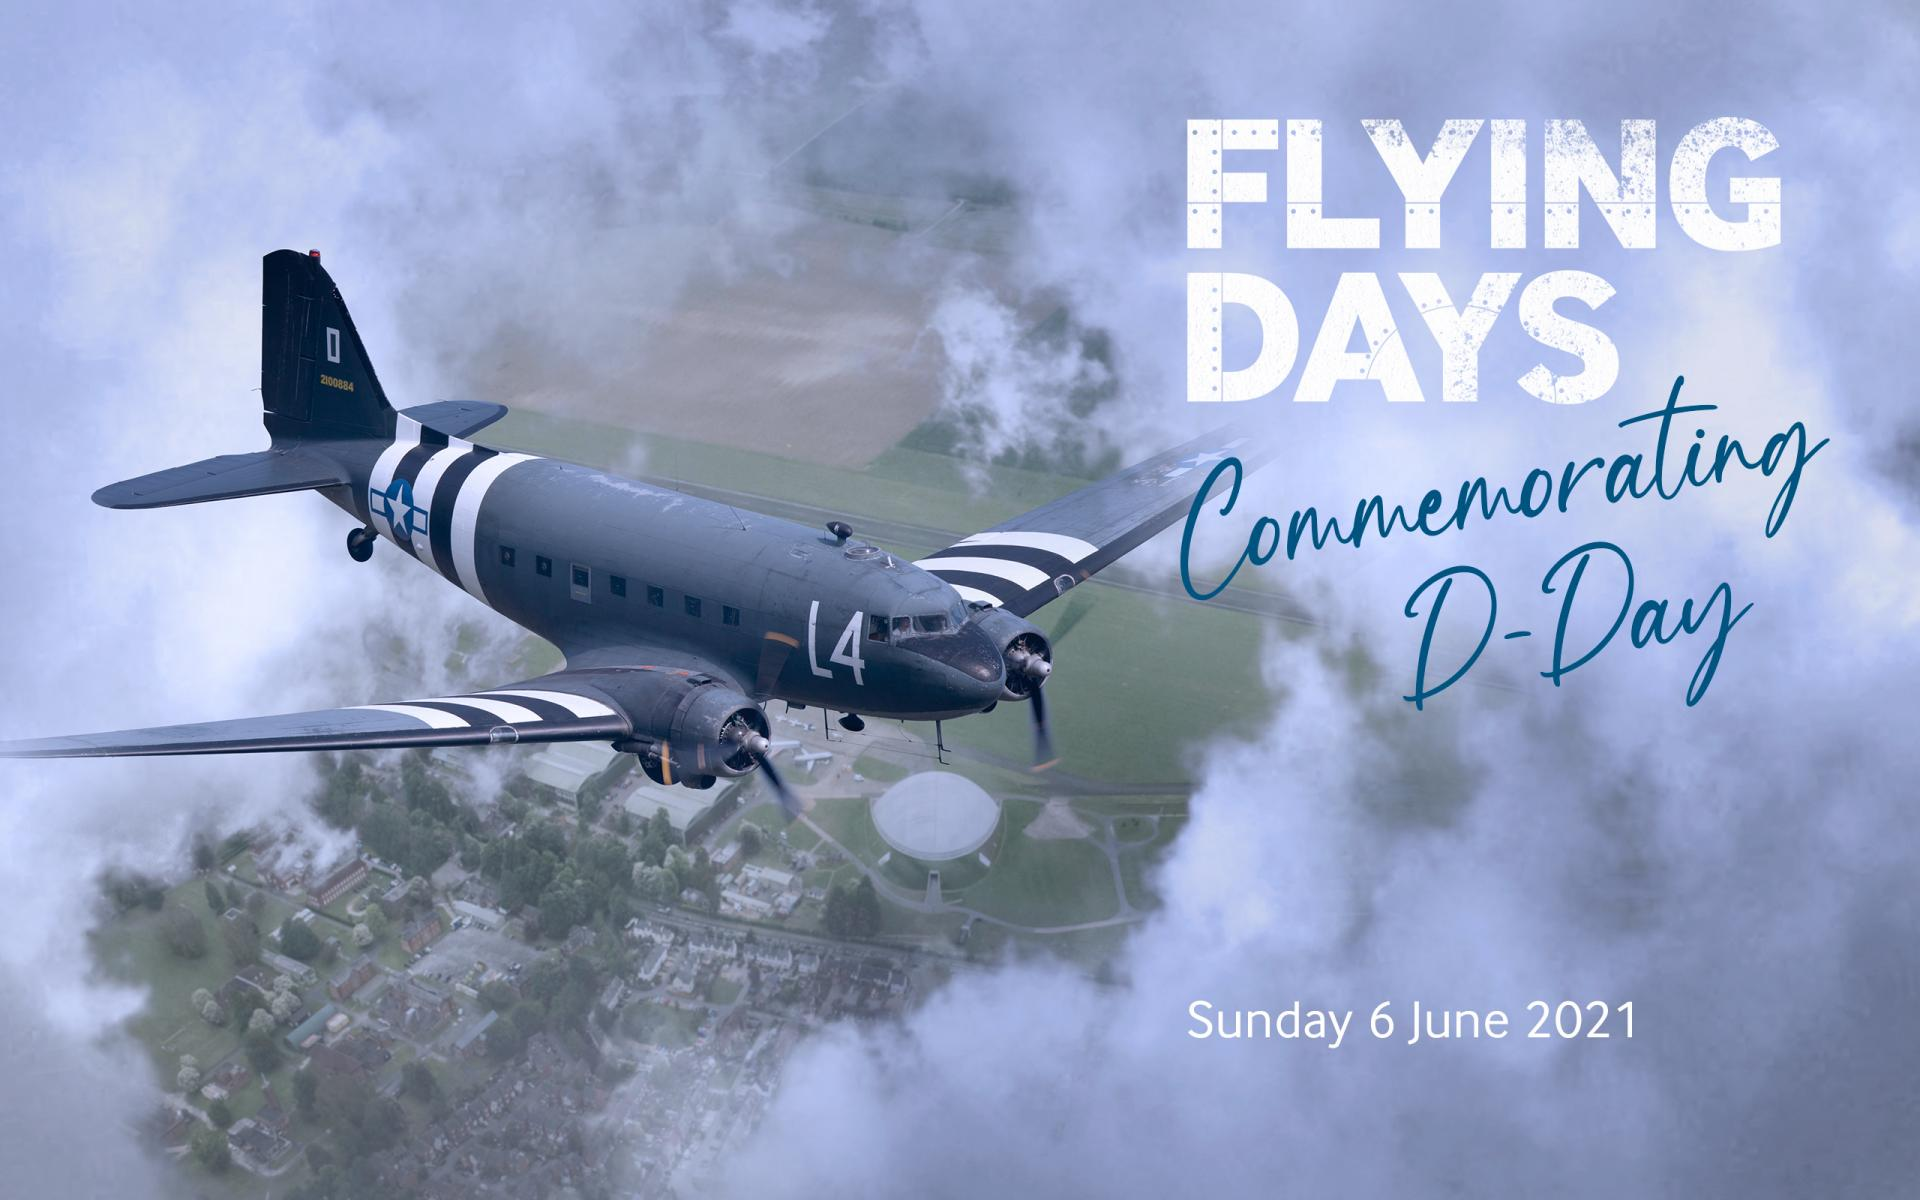 C-47 and Flying Days Commemorating D-Day title